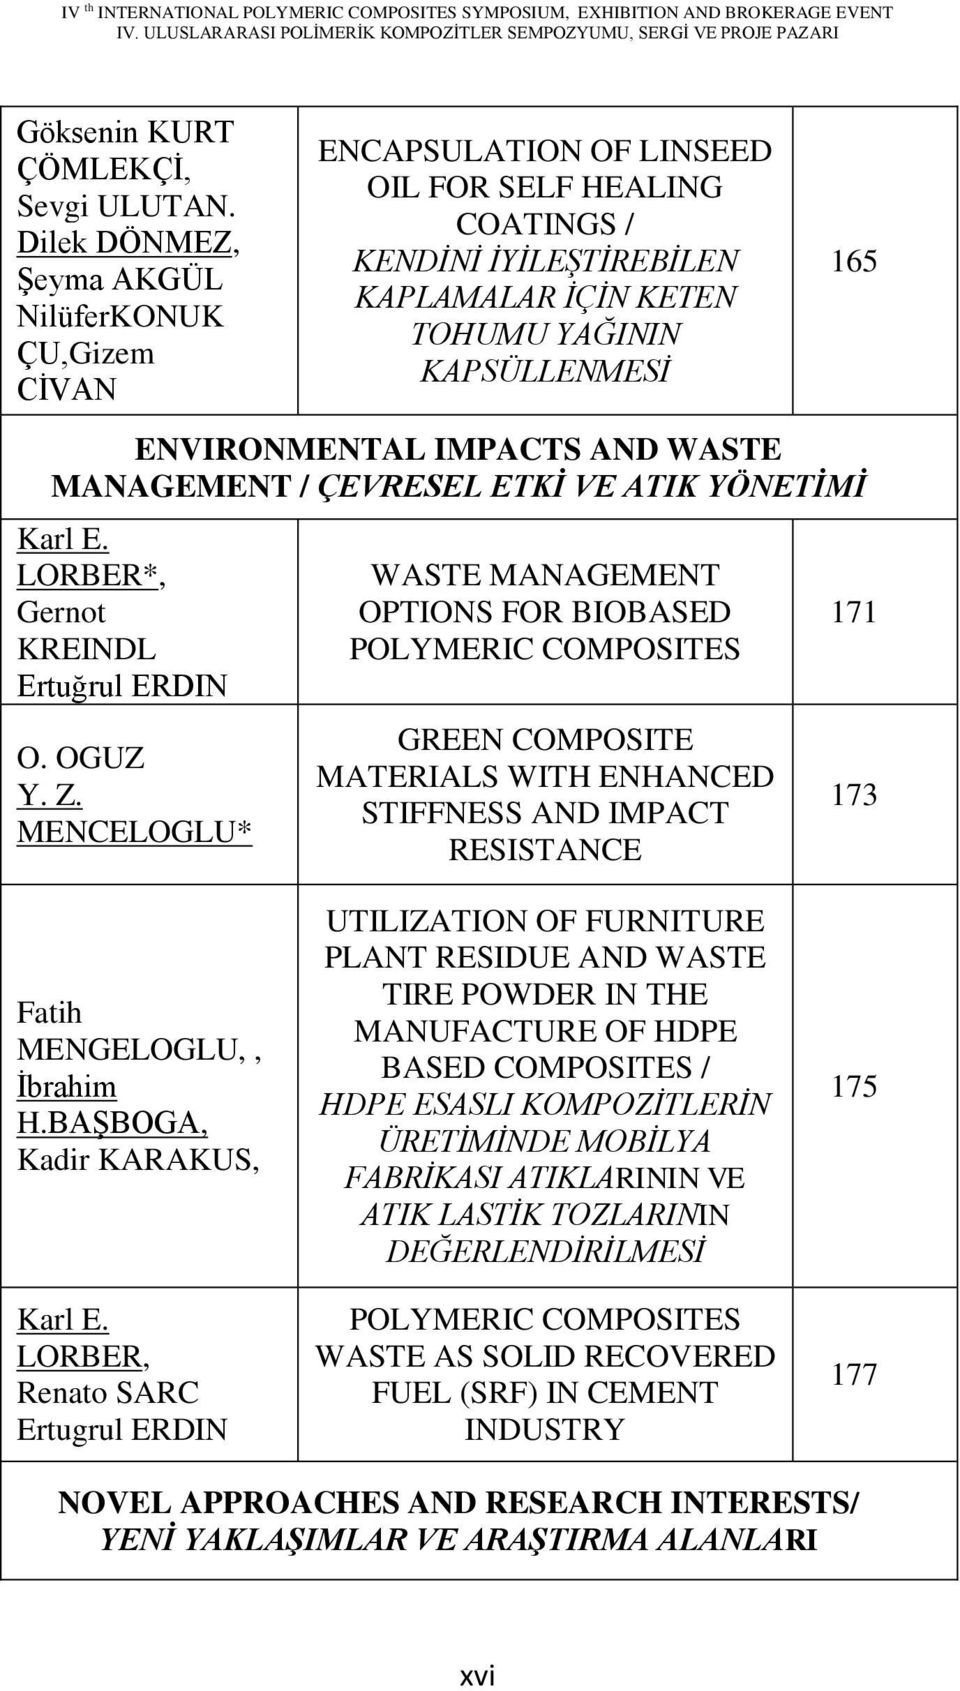 ENVIRONMENTAL IMPACTS AND WASTE MANAGEMENT / ÇEVRESEL ETKİ VE ATIK YÖNETİMİ Karl E. LORBER*, Gernot KREINDL Ertuğrul ERDIN O. OGUZ Y. Z.